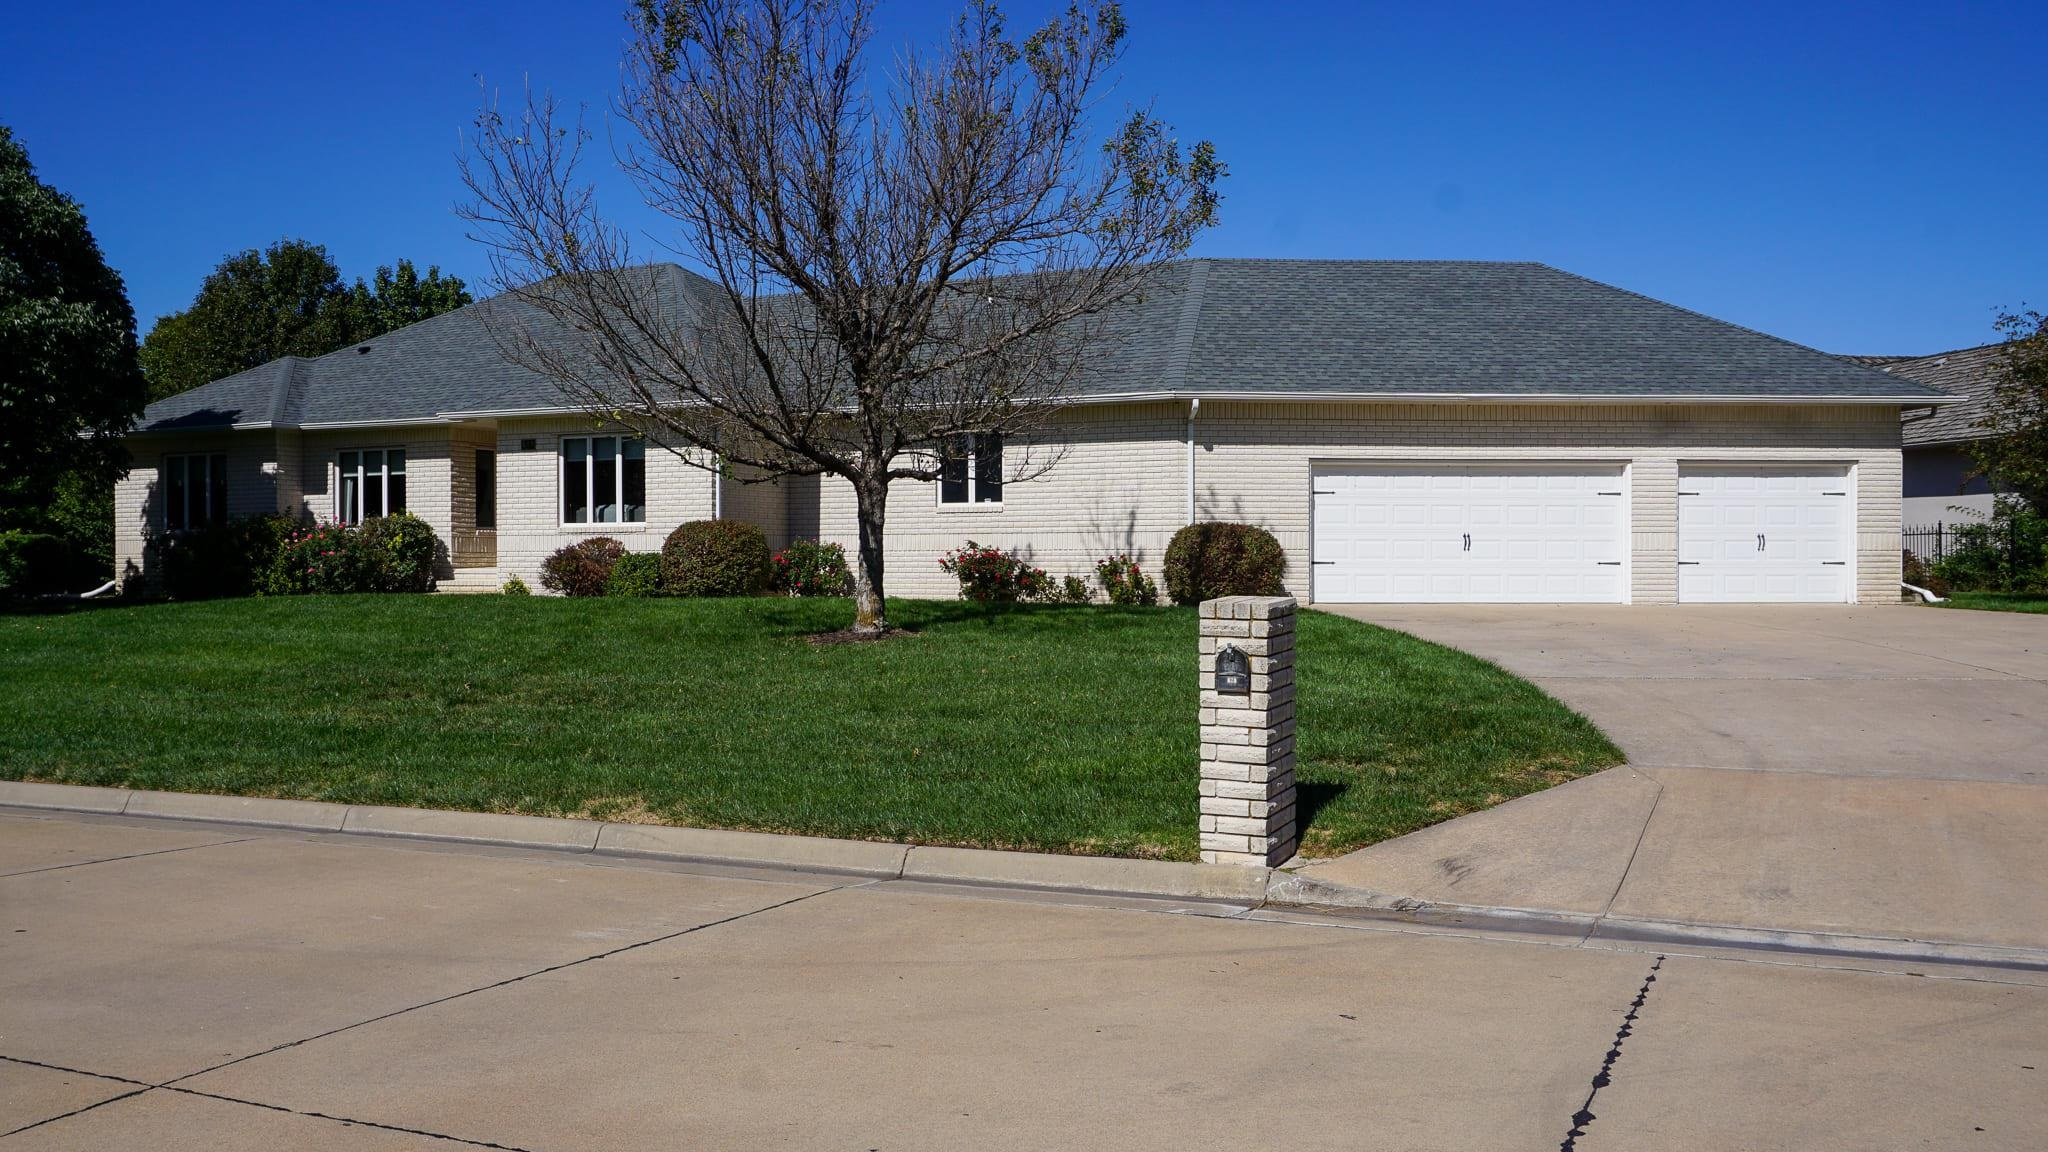 Amazing custom built all brick Ranch style home located in Stone Creek Estates that has 3 bedrooms,